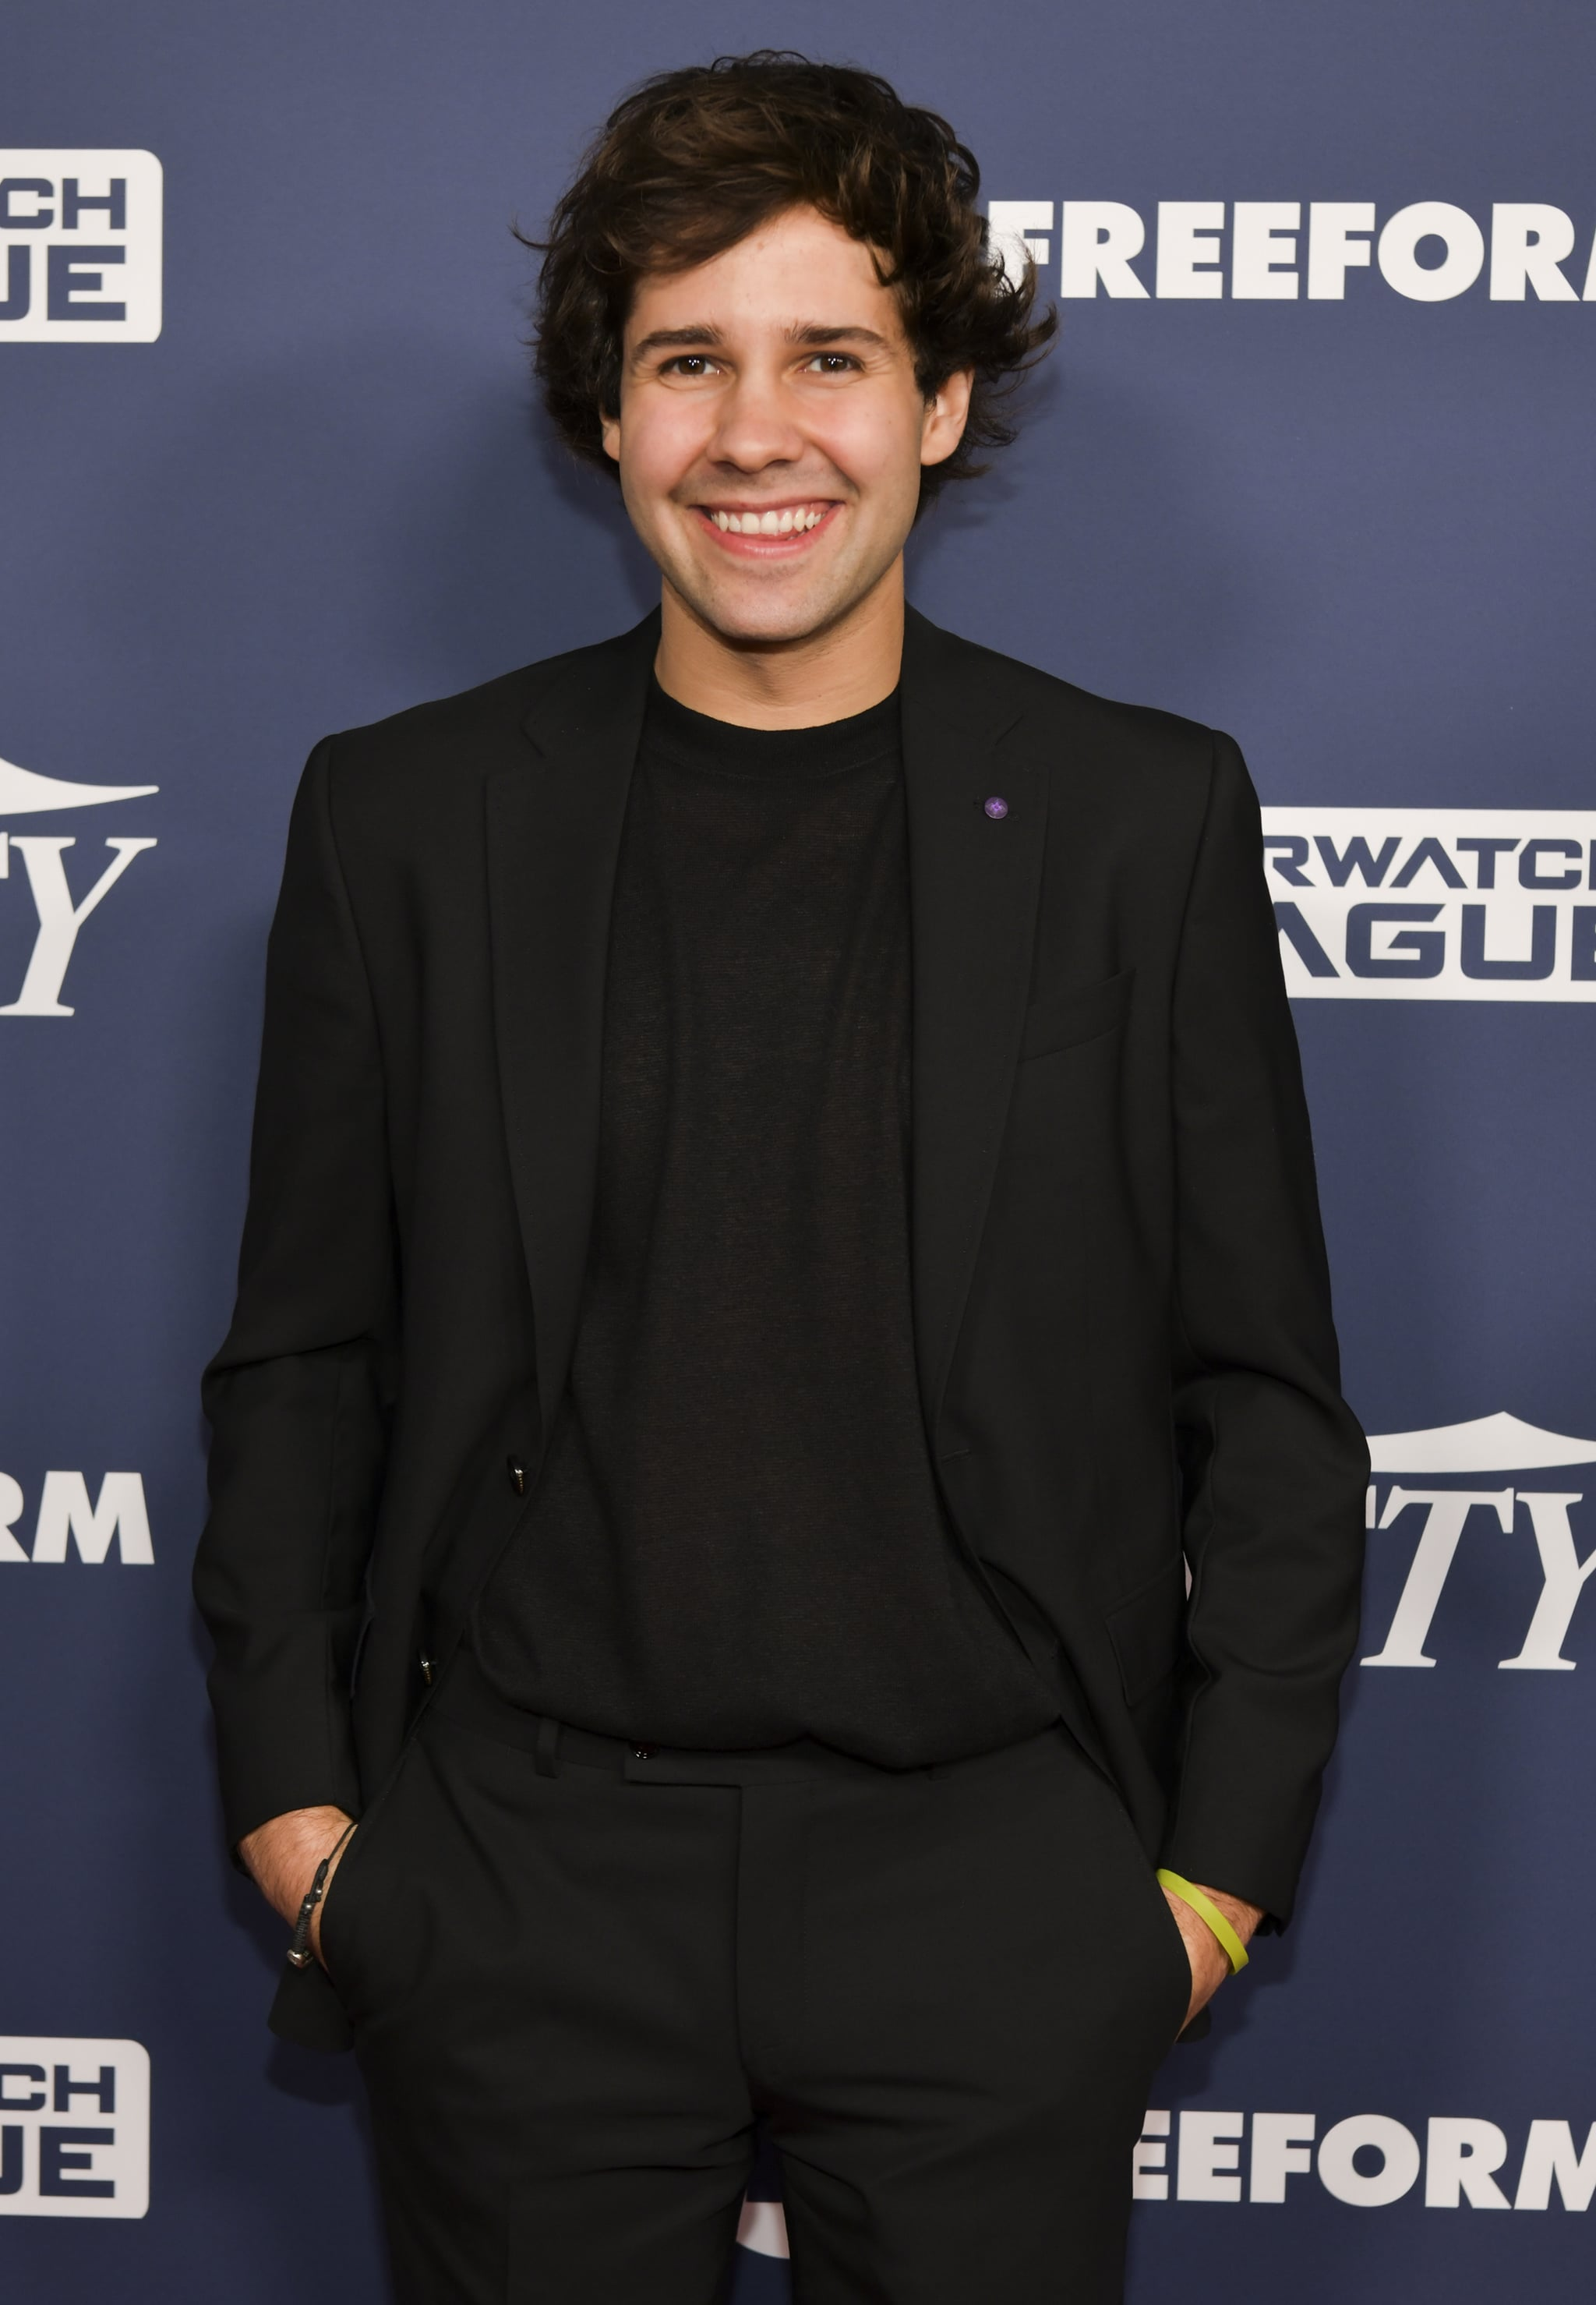 LOS ANGELES, CALIFORNIA - AUGUST 06: David Dobrik attends Variety's Power of Young Hollywood at The H Club Los Angeles on August 06, 2019 in Los Angeles, California. (Photo by Rodin Eckenroth/Getty Images)